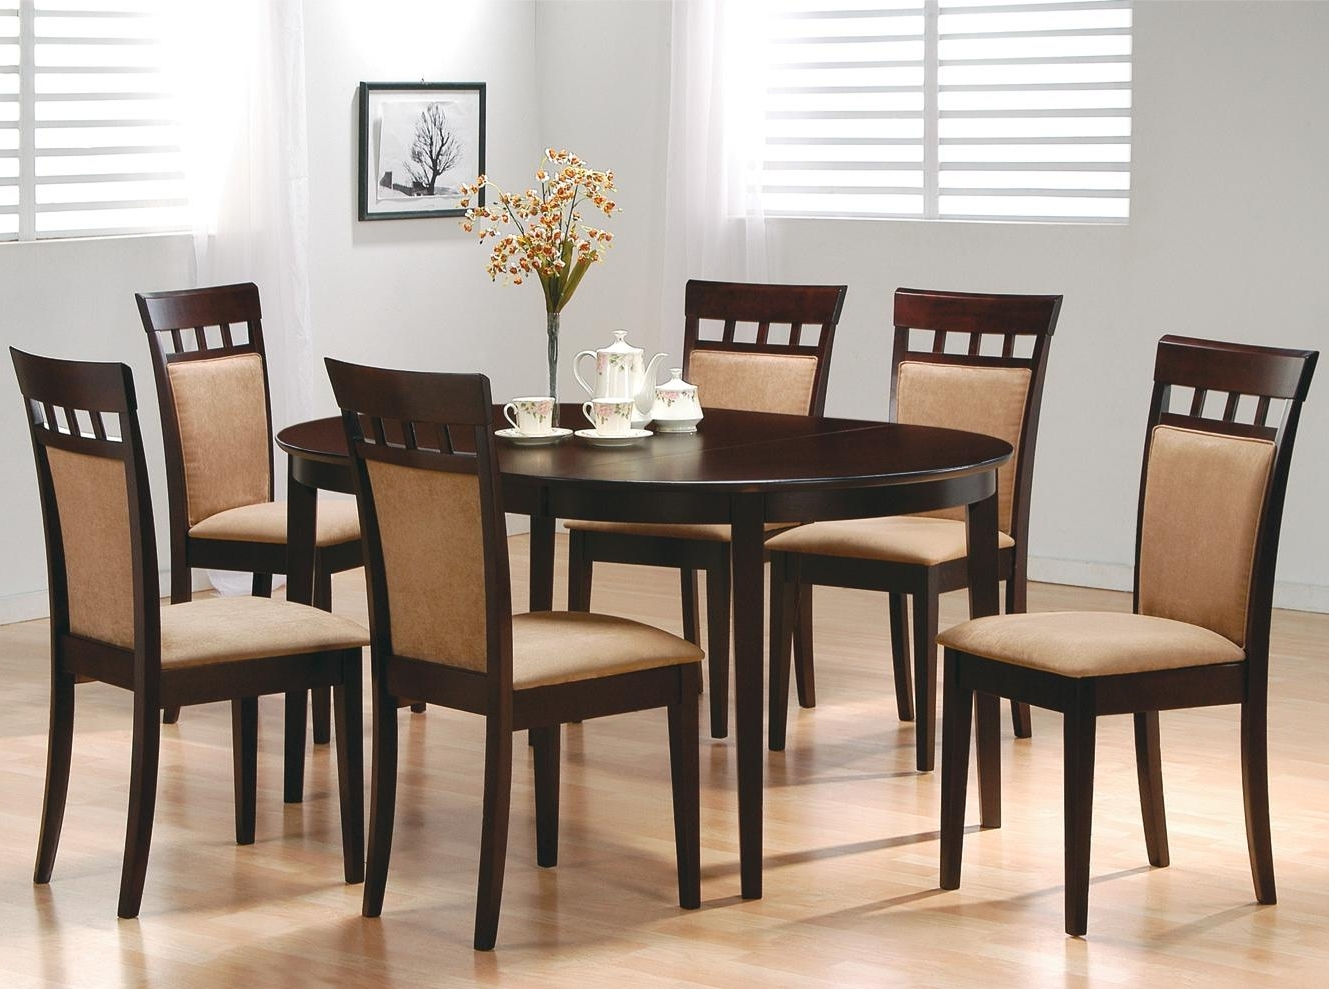 Widely Used Coaster Mix & Match 7 Piece Dining Set (View 20 of 25)